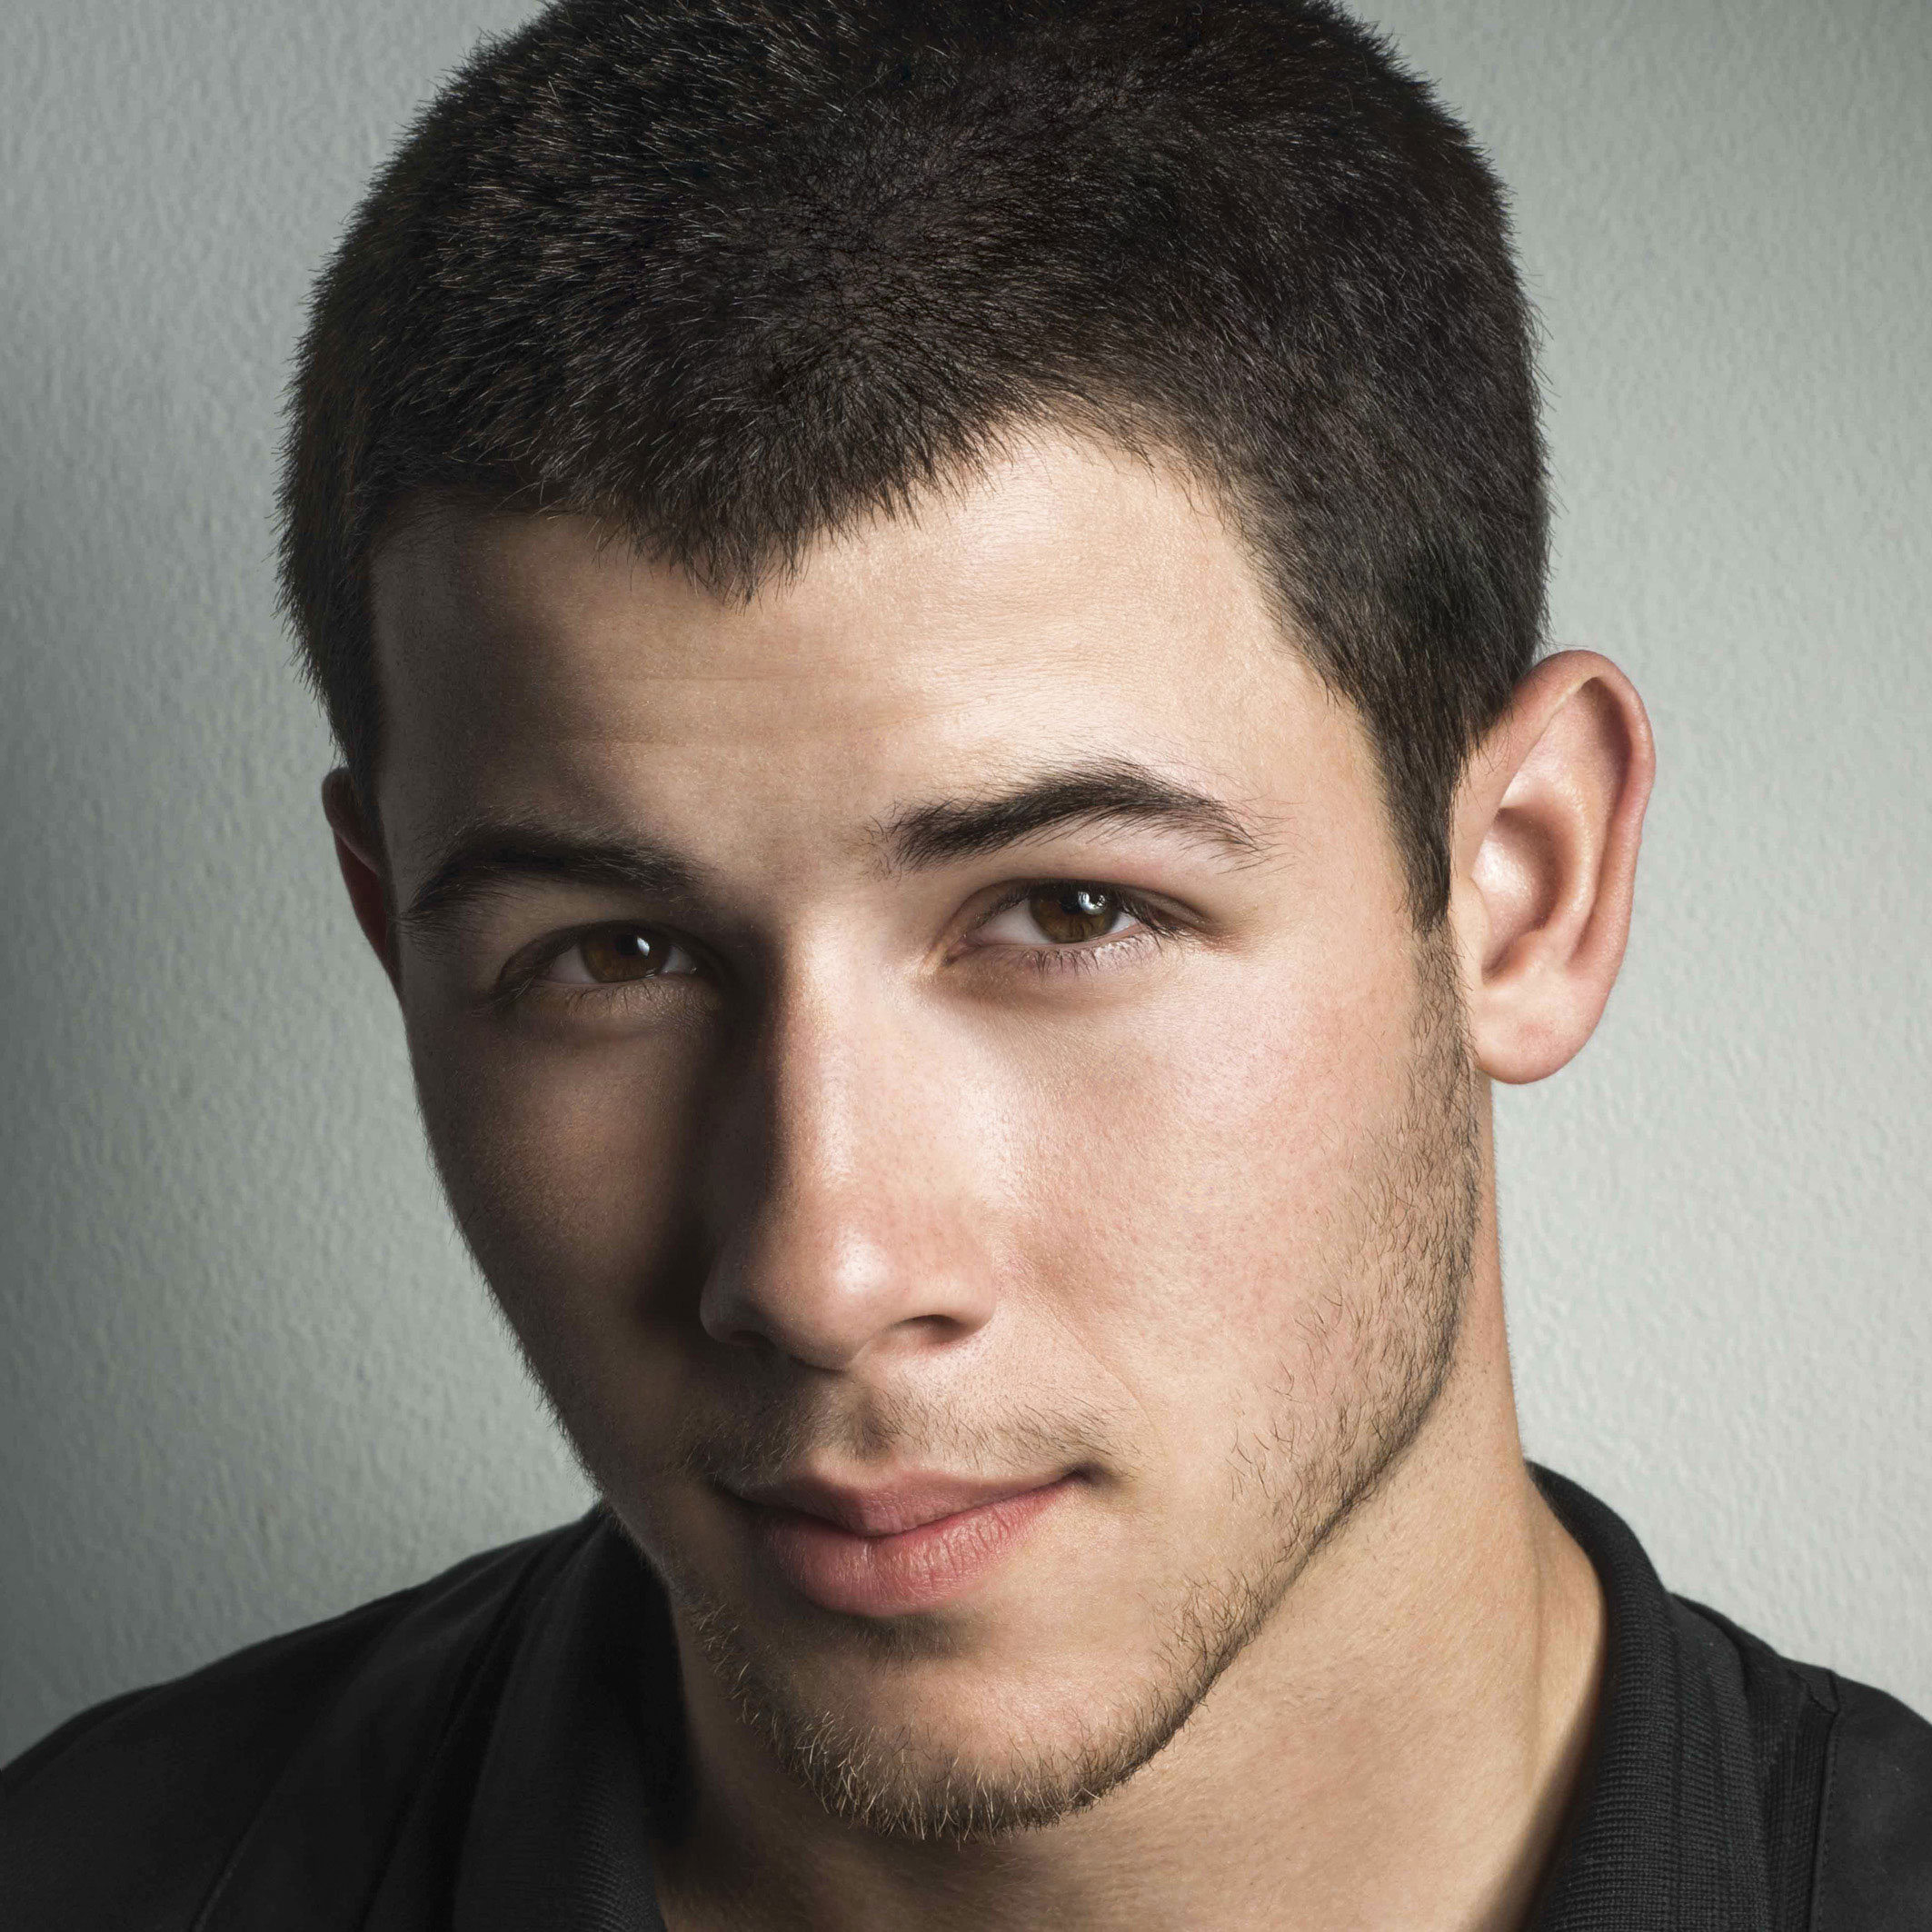 Nick Jerry Jonas